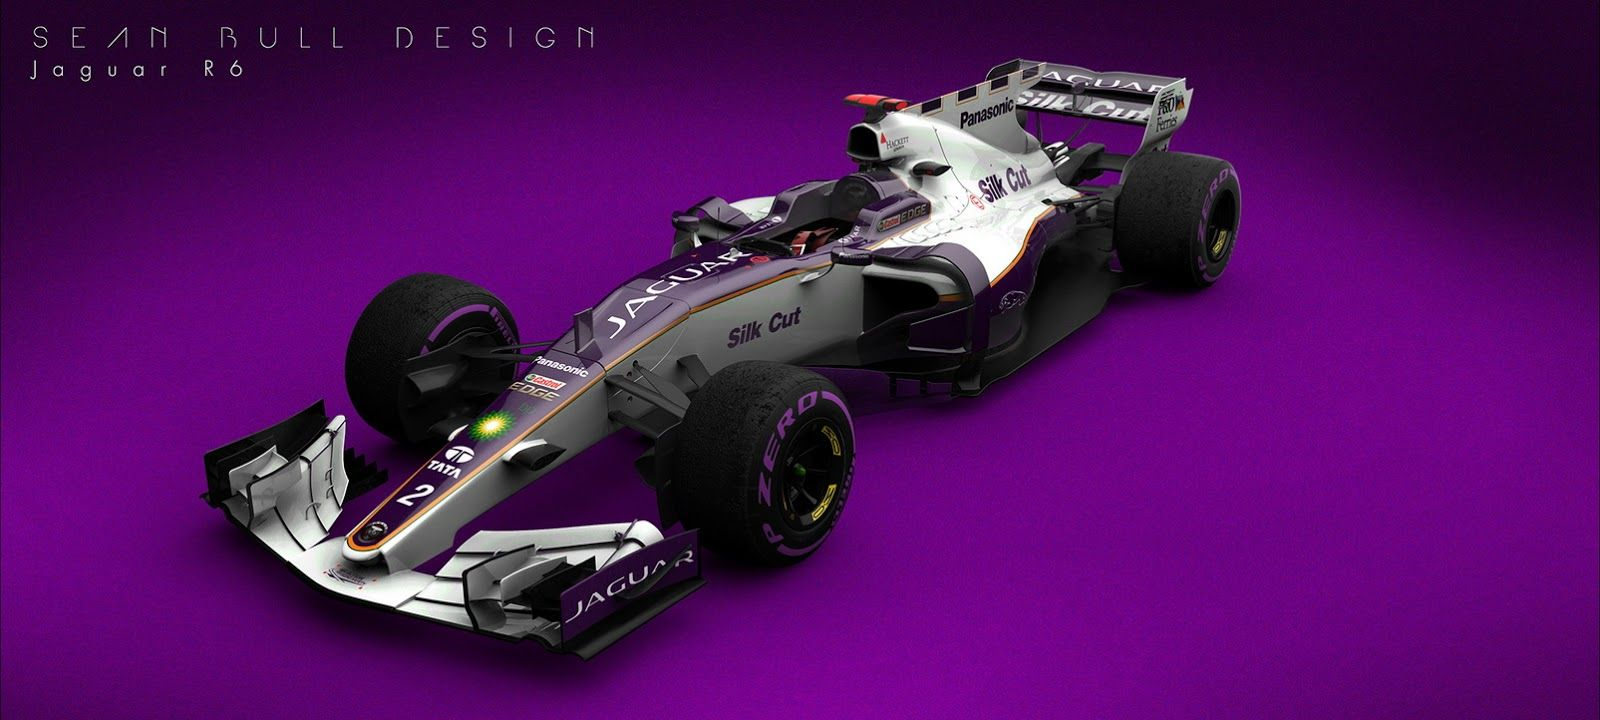 F1 jaguar racing render what are the odds for it to become real if